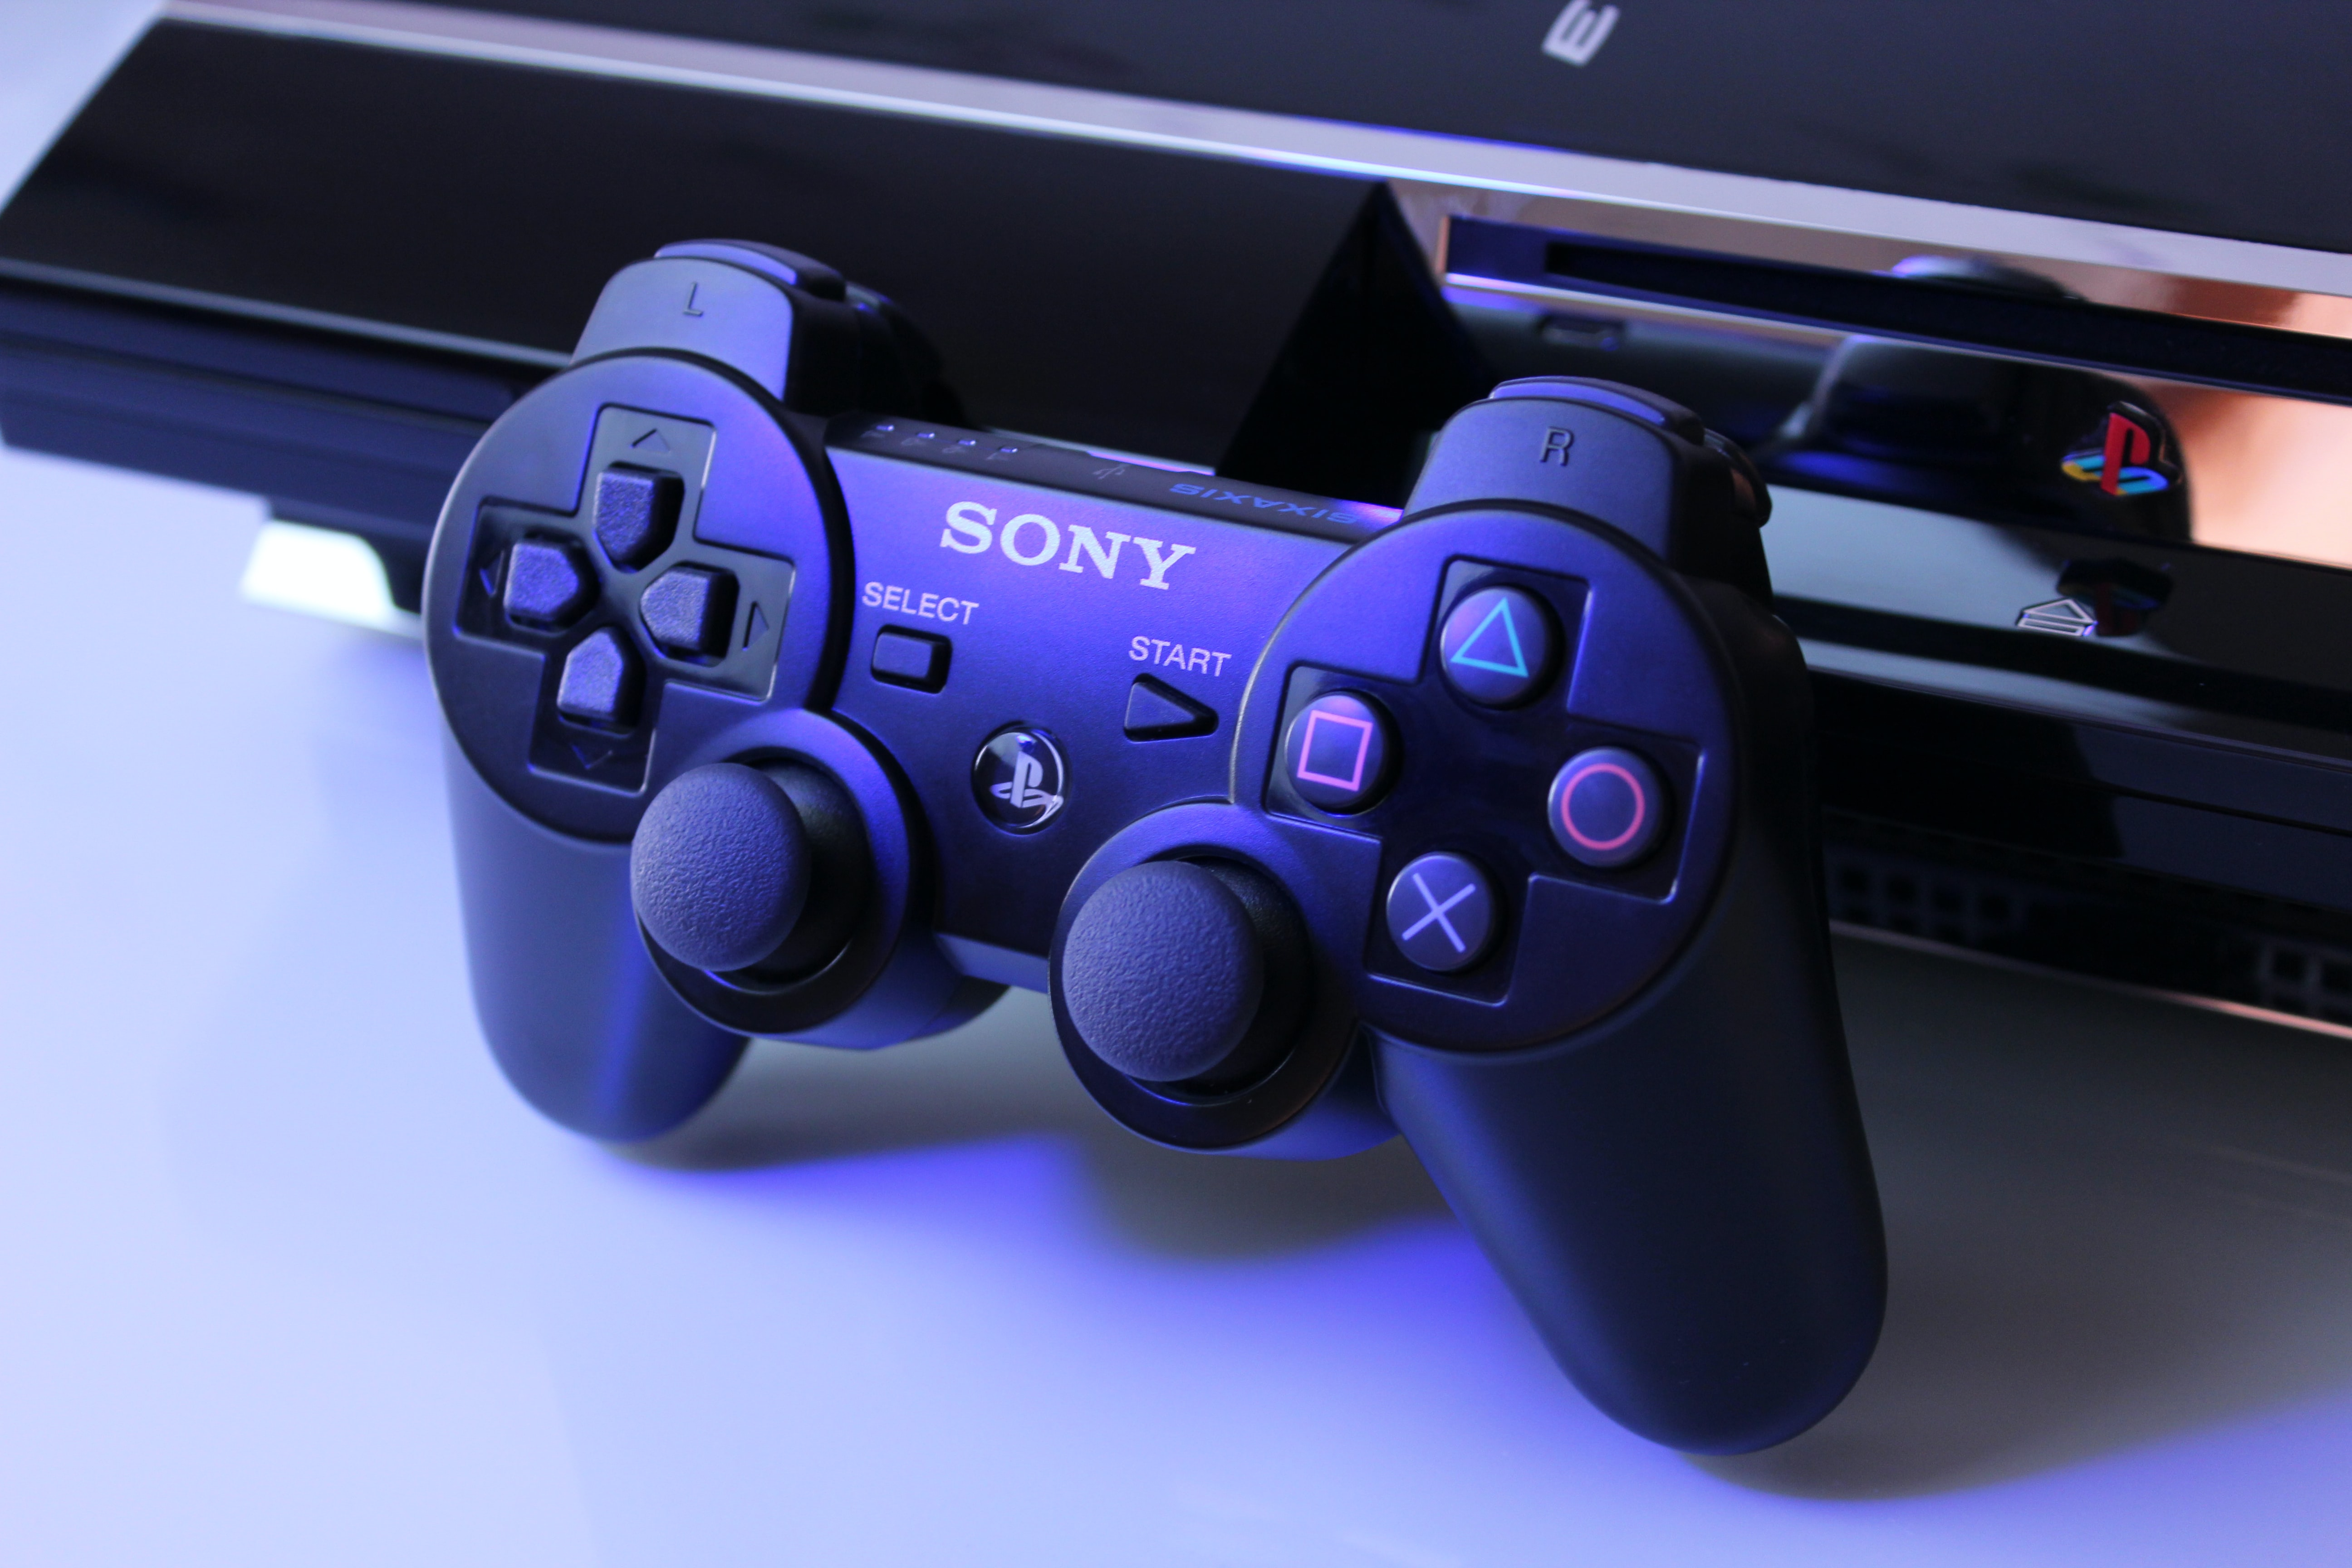 black Sony PS2 controller on white surface